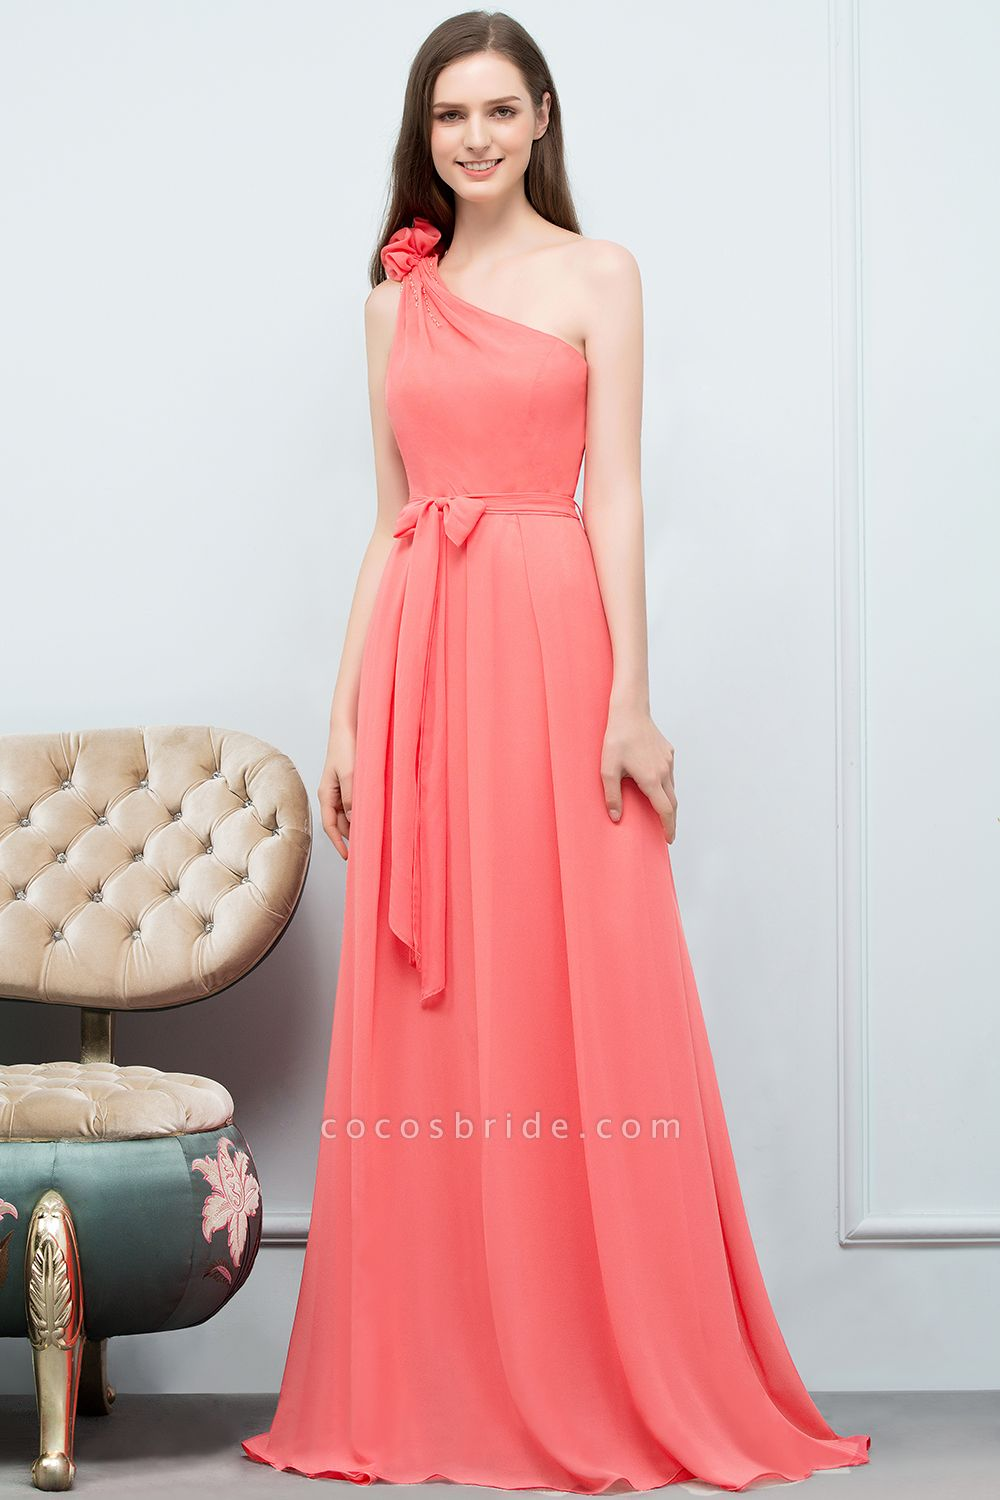 A-line Chiffon One-Shoulder Sleeveless Floor-Length Bridesmaid Dress with Bow Sash